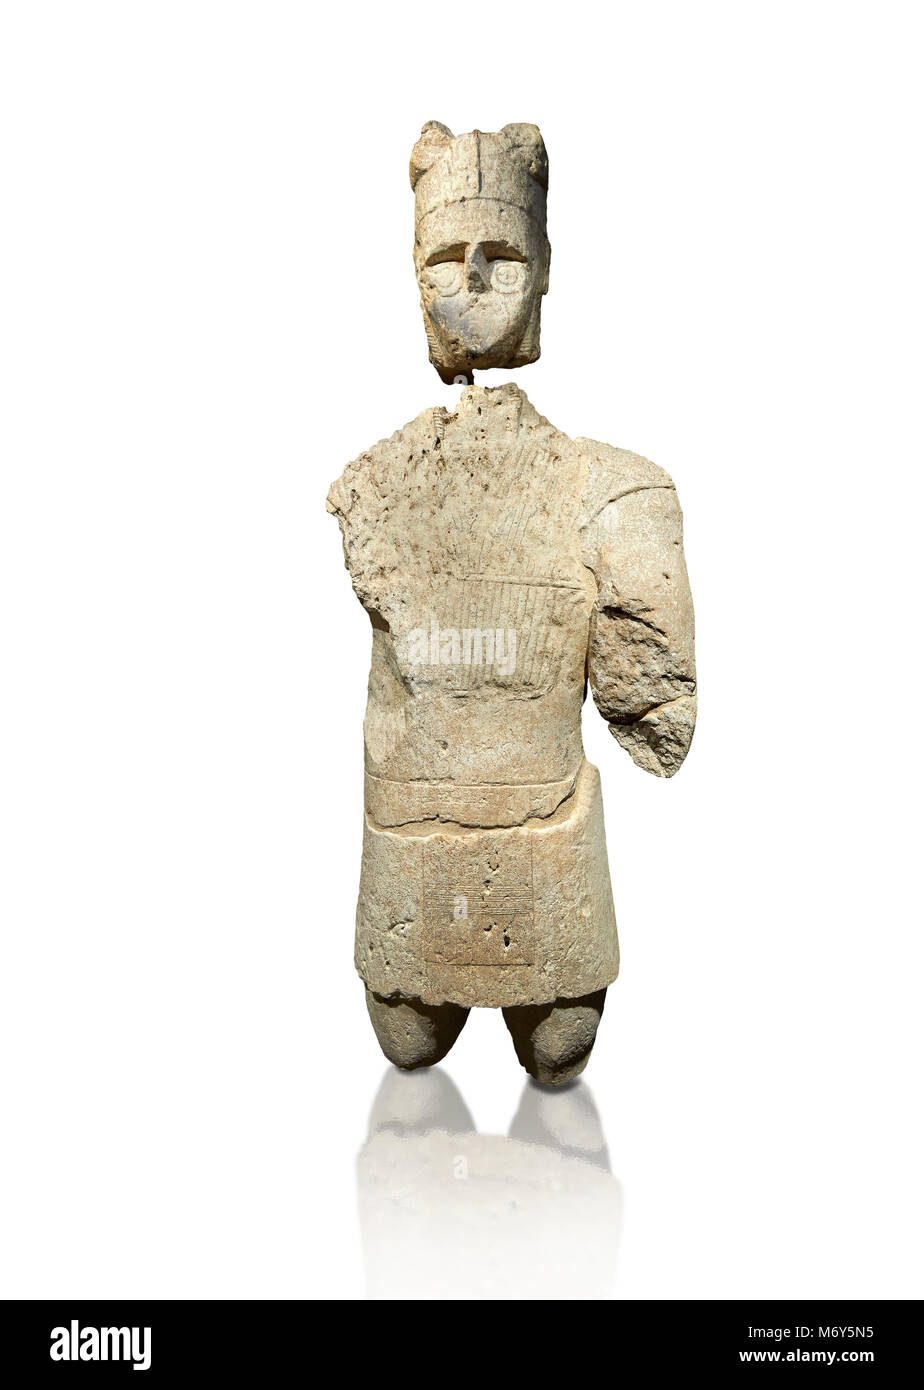 9th century BC Giants of Mont'e Prama  Nuragic stone statue of an archer, Mont'e Prama archaeological site, - Stock Image